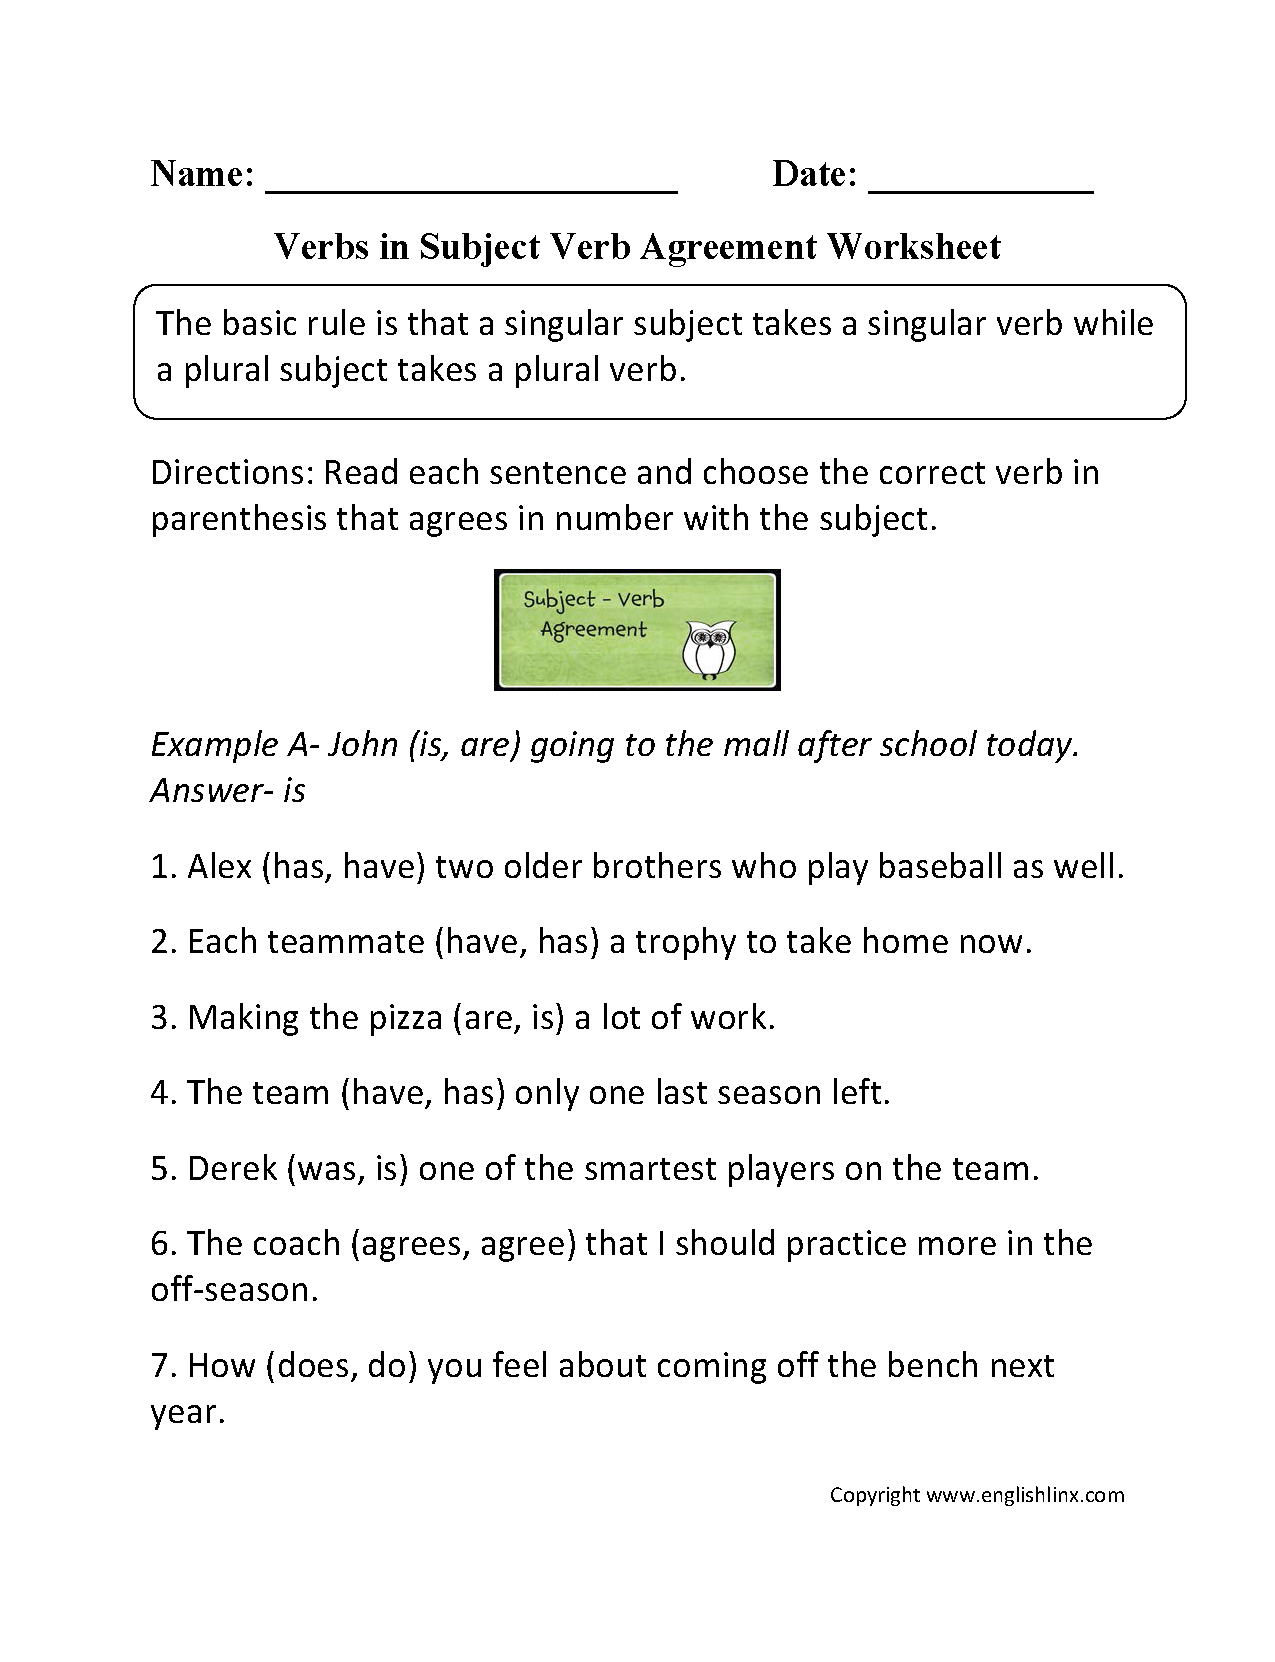 Verbs In Subject Verb Agreement Worksheet Language Arts D